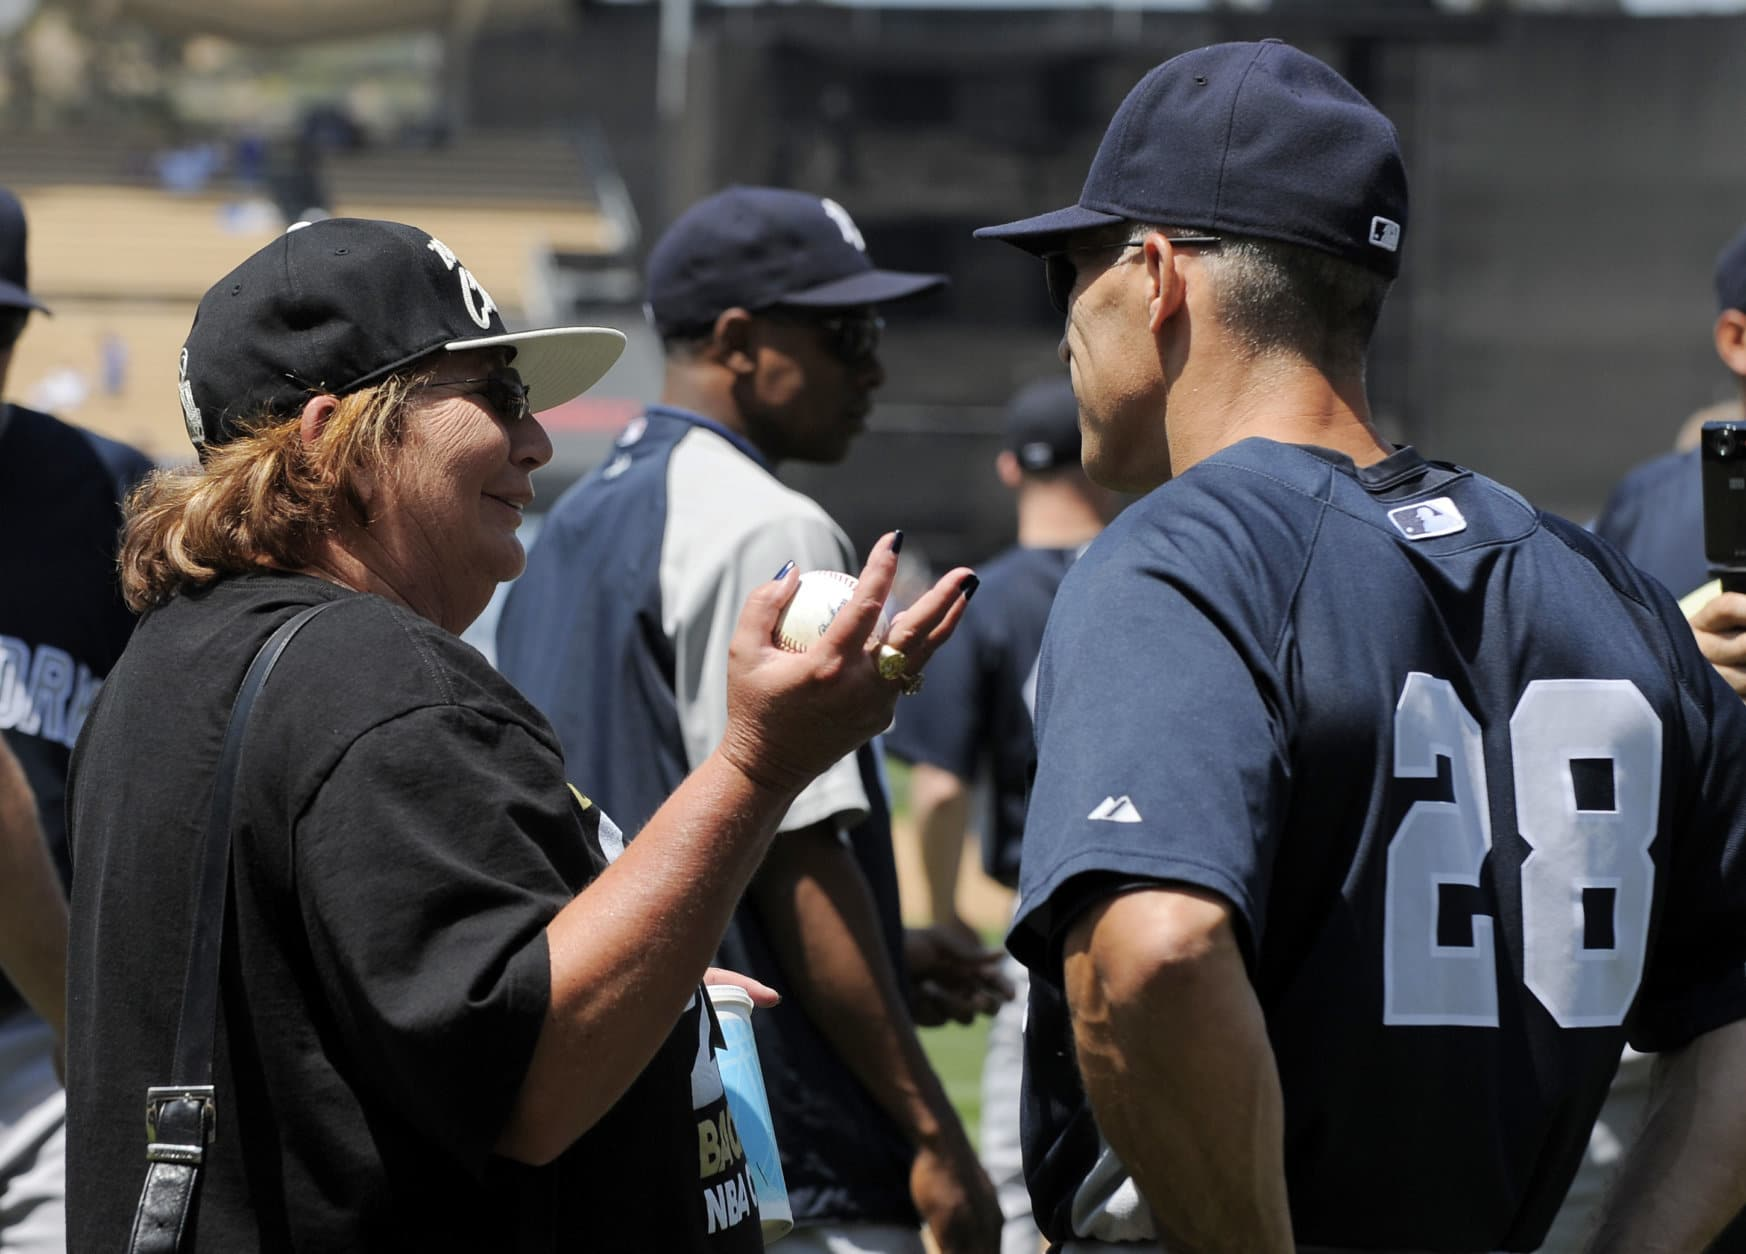 New York Yankees manager Joe Girardi, right, talks with actress Penny Marshall prior to their baseball game against the Los Angeles Dodgers, Saturday, June 26, 2010, in Los Angeles. (AP Photo/Mark J. Terrill)